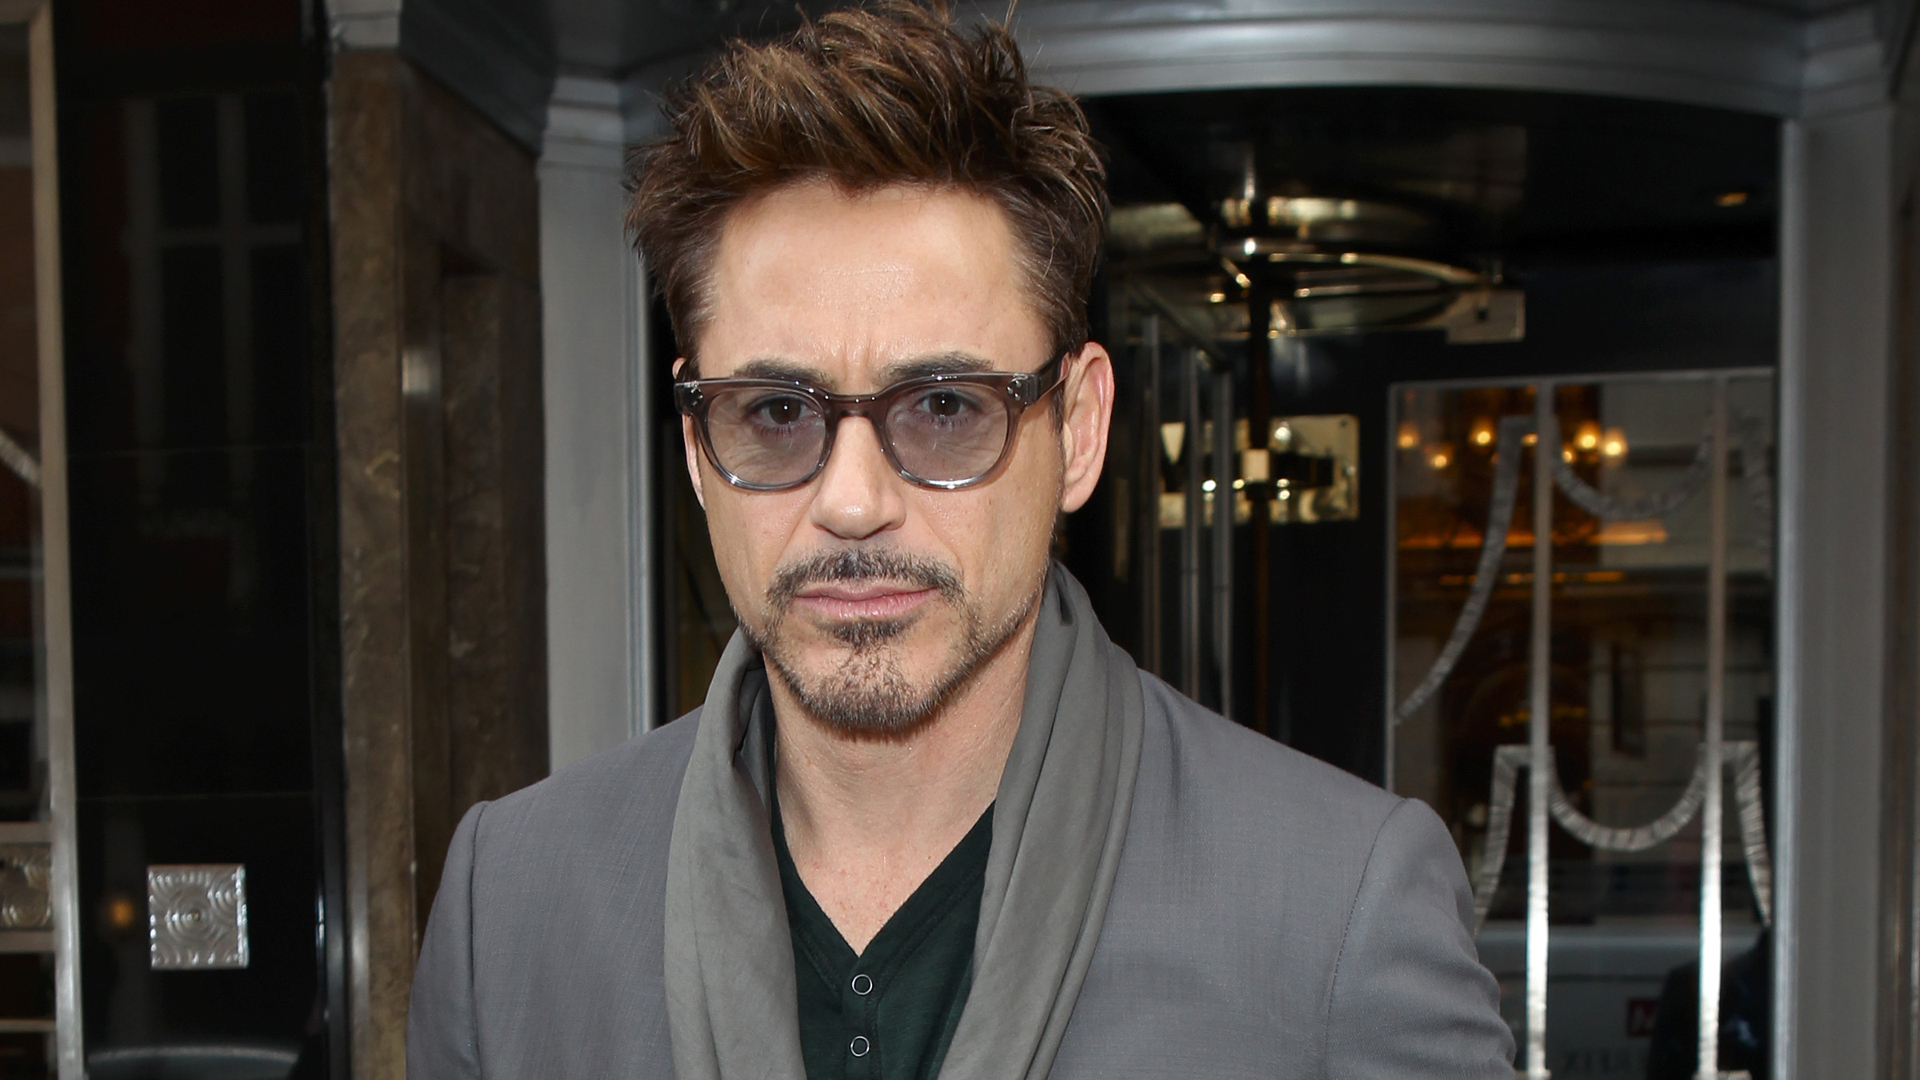 Free hd wallpaper robert downey jr - 20 Hd Robert Downey Jr Wallpapers